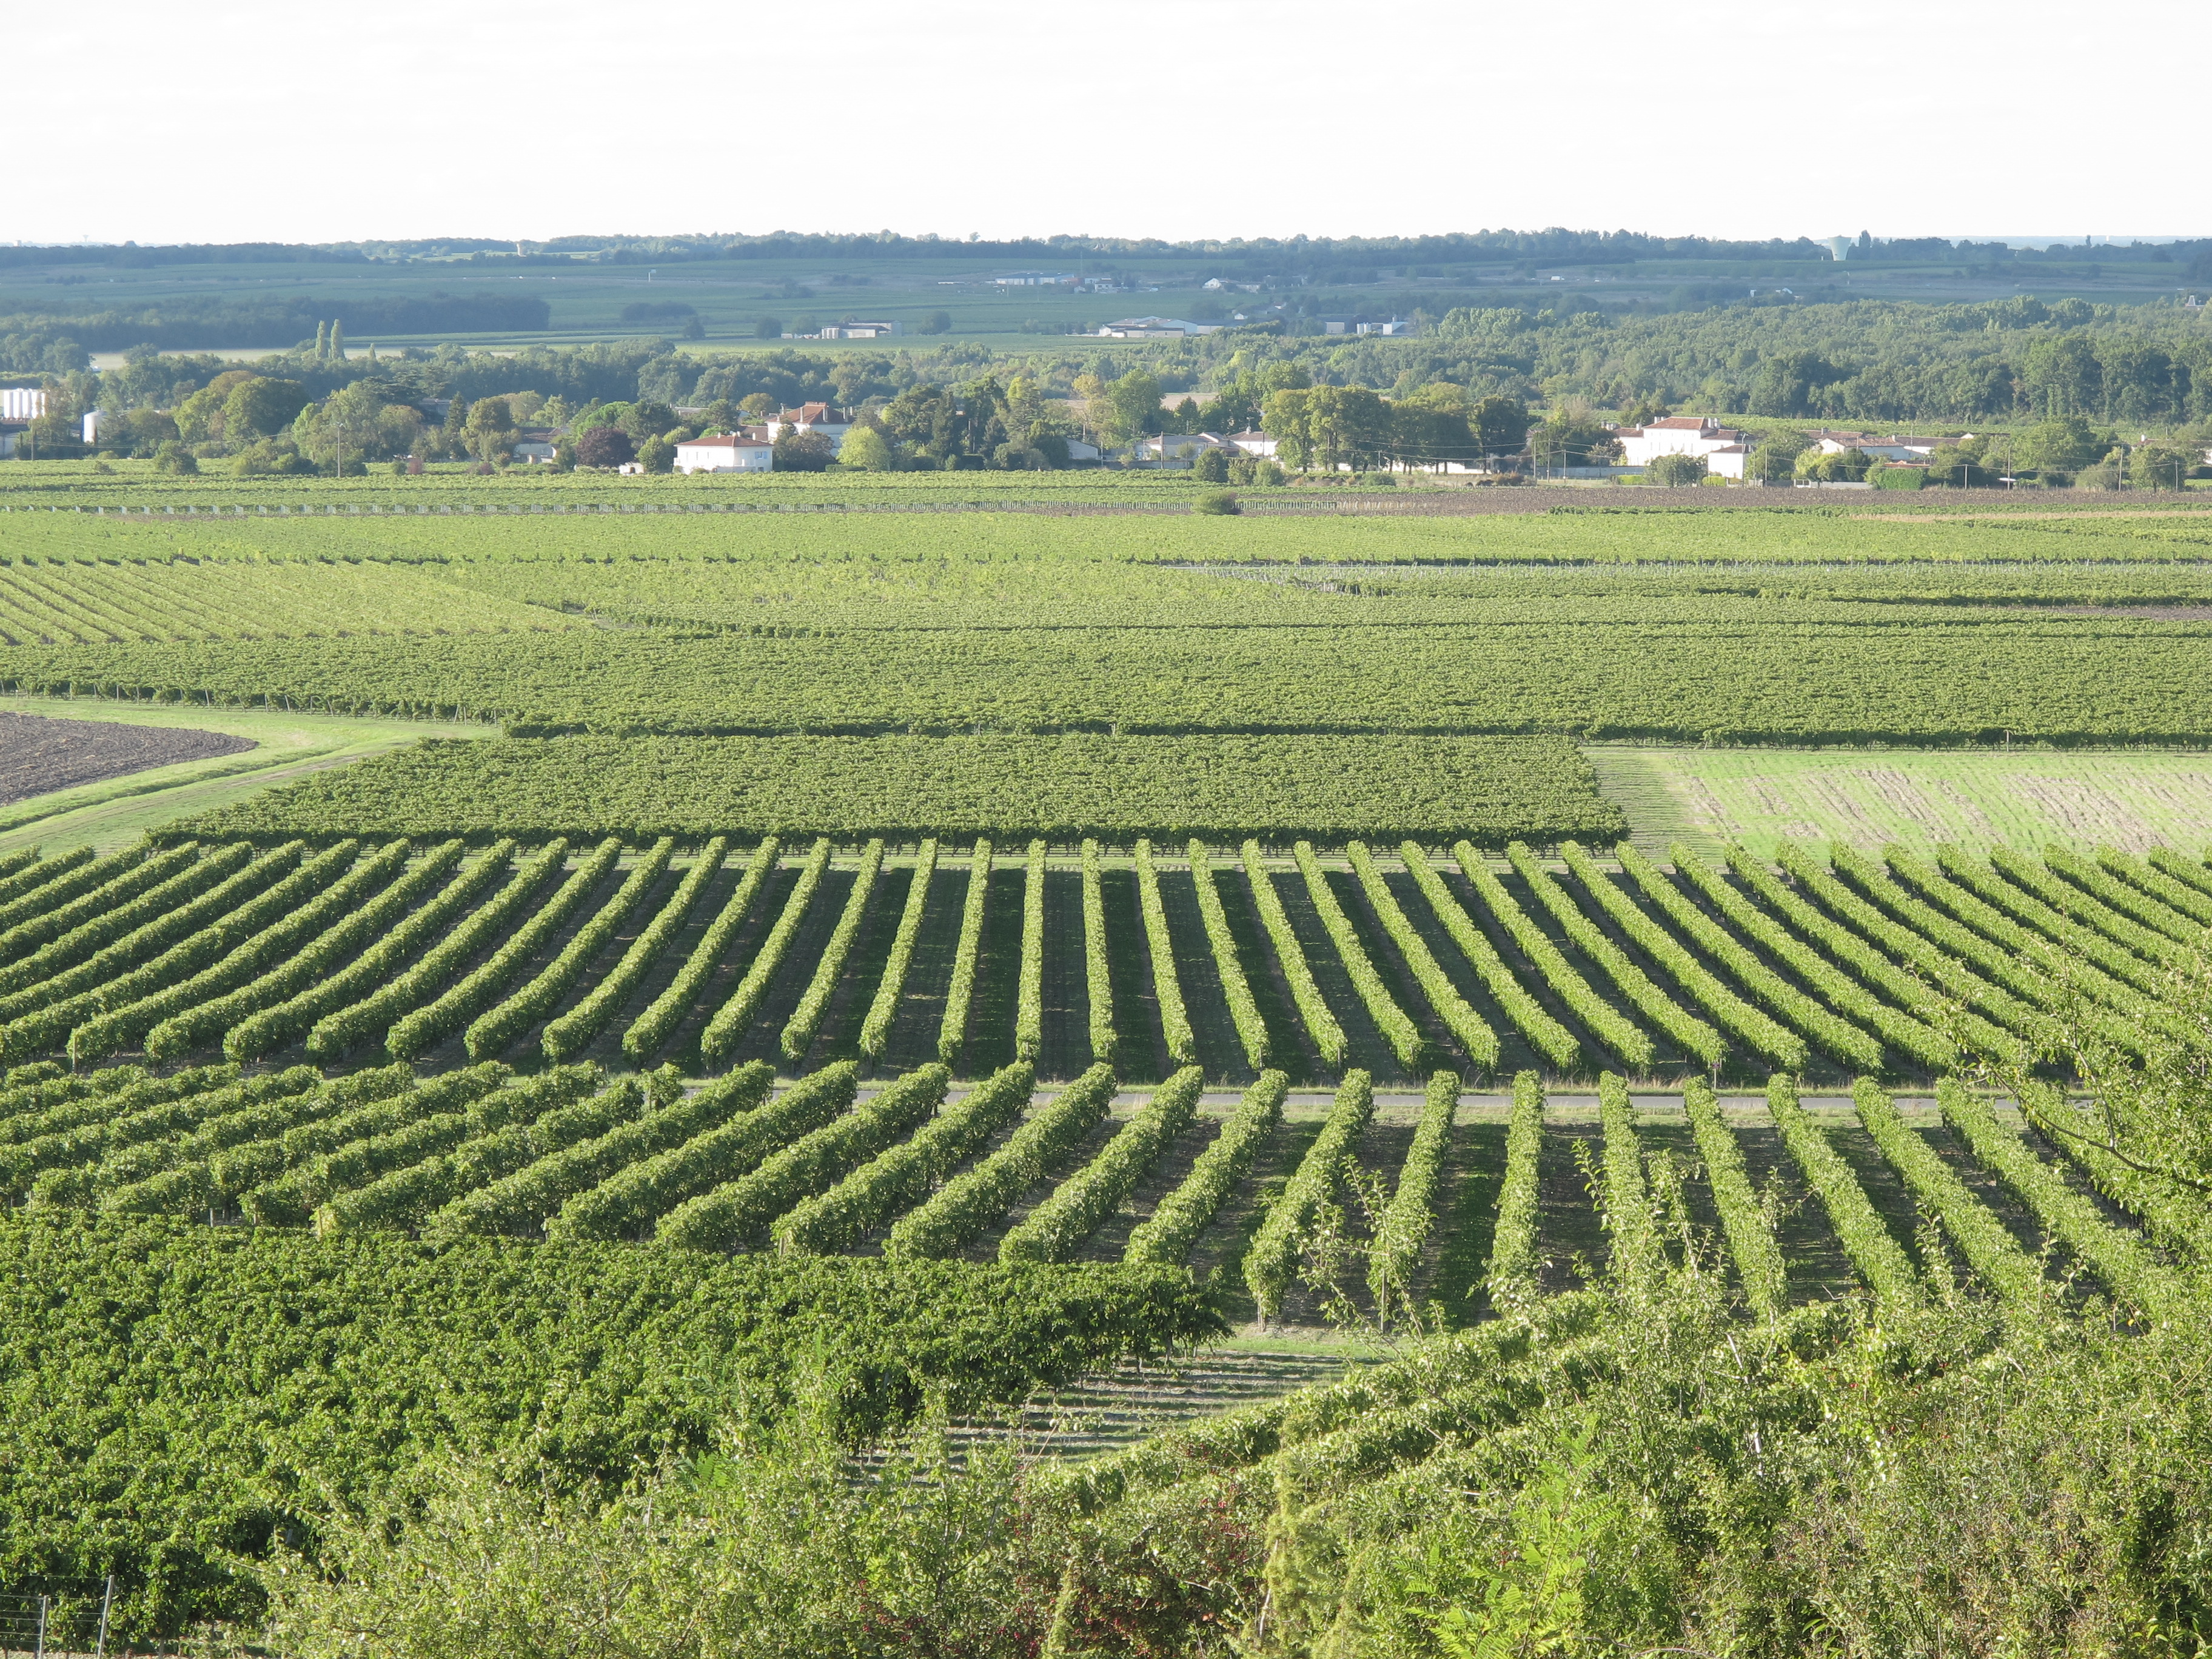 The Vineyards of the Grand Champagne